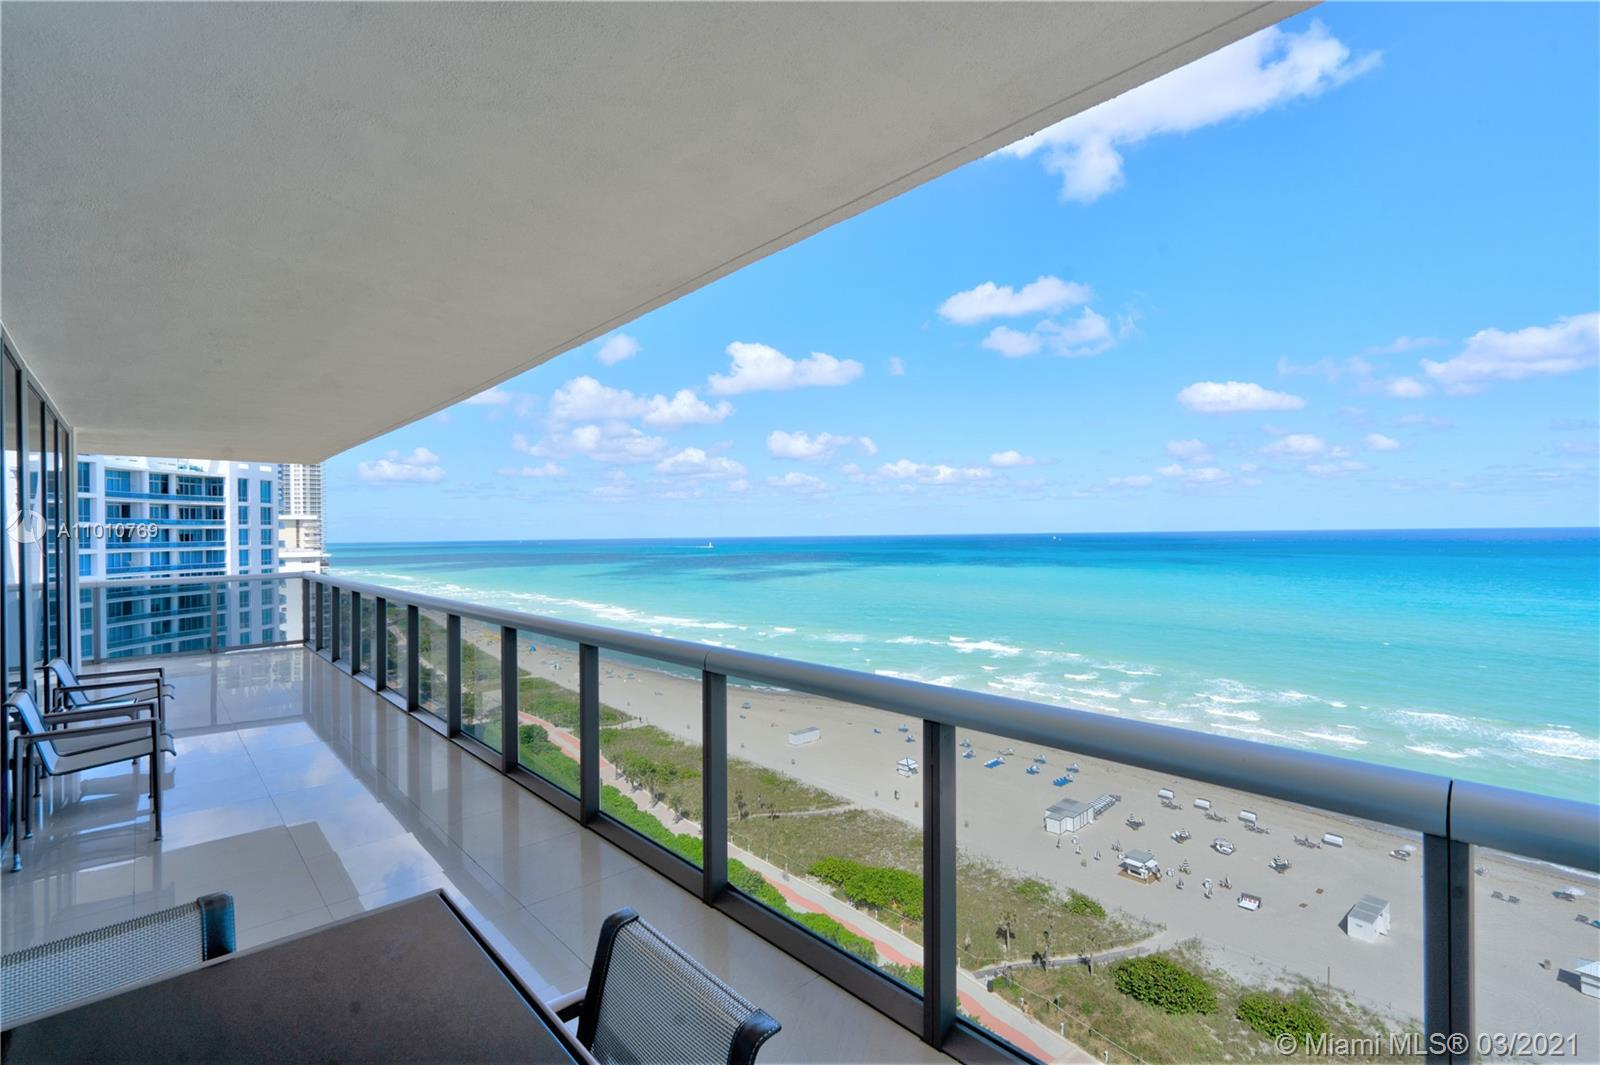 """This is the one you have been waiting for! The 01 line is the most desired in the building offering a direct panoramic ocean front view. The 19th floor is also """"The perfect height"""" were you can enjoy beautiful Ocean and city skyline views from a HUGE wraparound terrace with over 700 sq. ft. A truly Multi Million dollar view! This condo offers an open design kitchen with top of the line Thermador appliances including a built in espresso machine. Two bedrooms, two and one half bathrooms conveniently located near South Beach and Bal Harbor. This boutique stile building is very service oriented with valet parking, concierge, security, pool and beach service and onsite management. Special assessment on this unit is paid in full, the new owner can enjoy of the many building upgrades just made!"""